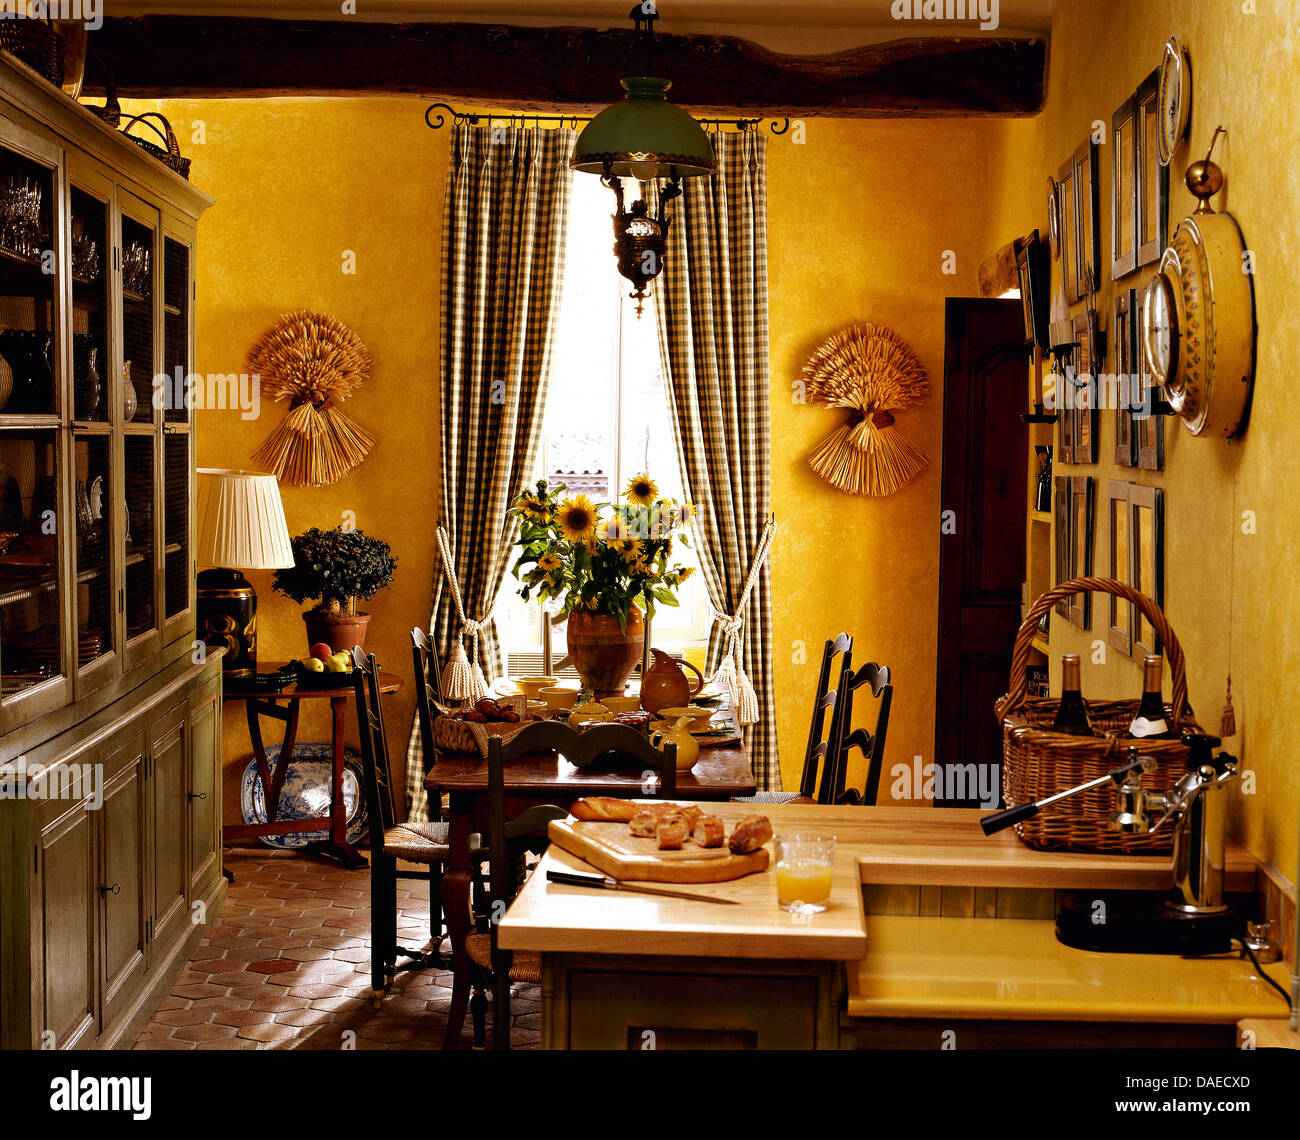 Large Painted Dresser In Bright Yellow French Country Kitchen Dining Room With Checked Curtains On The Windows